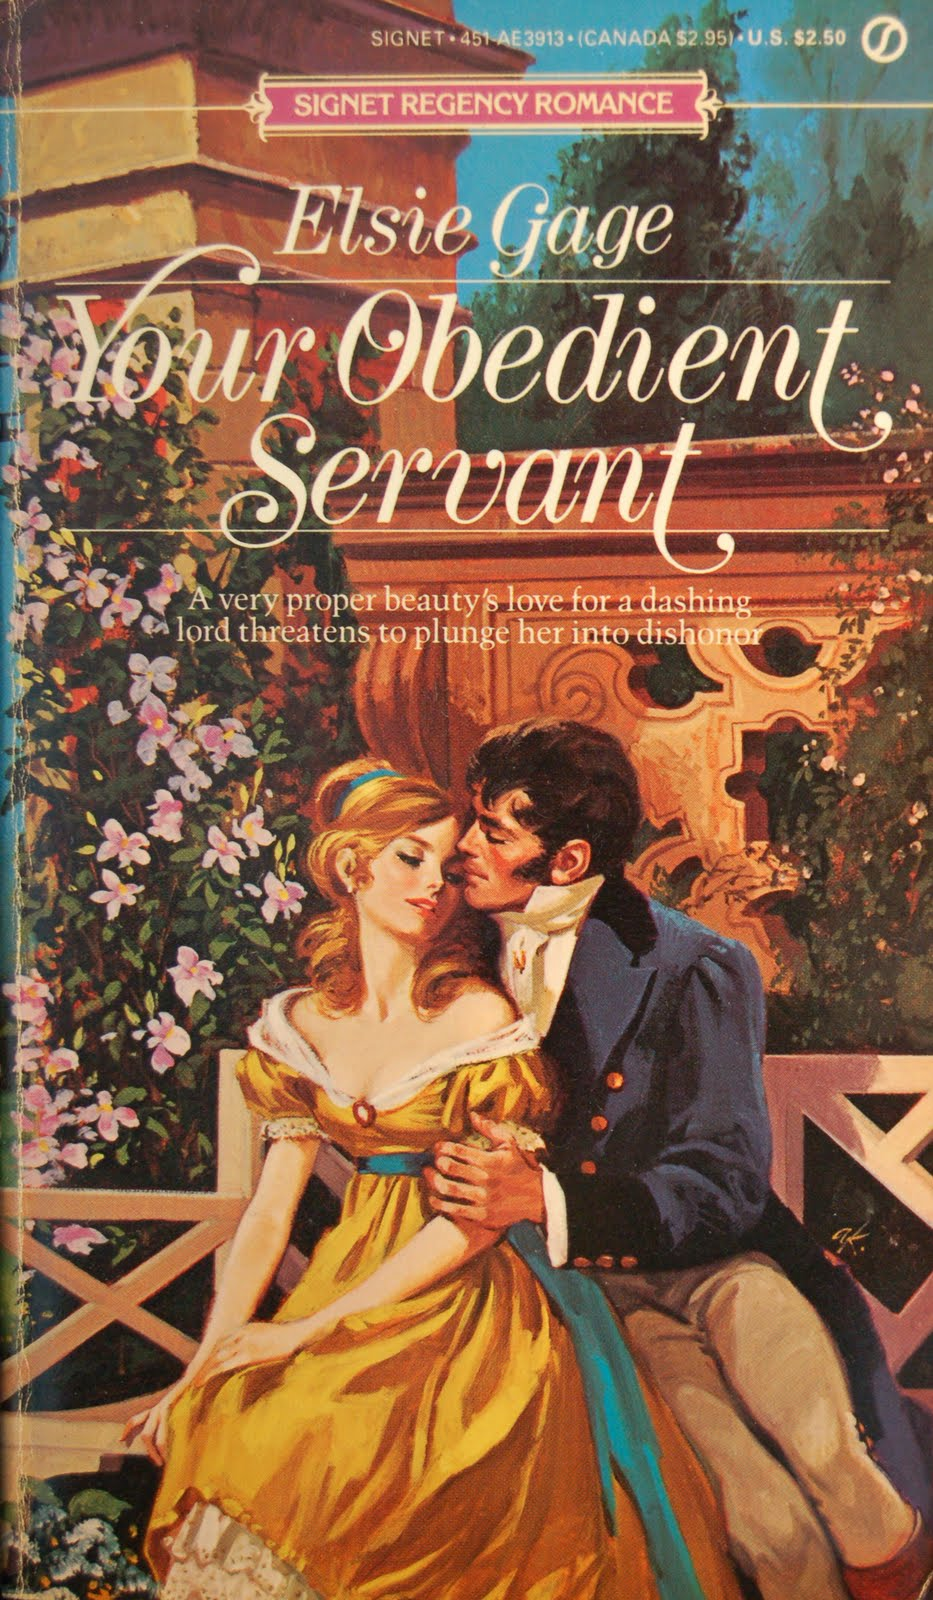 Pdf obedient signet regency full book download allan kass related to obedient signet regency fandeluxe Image collections